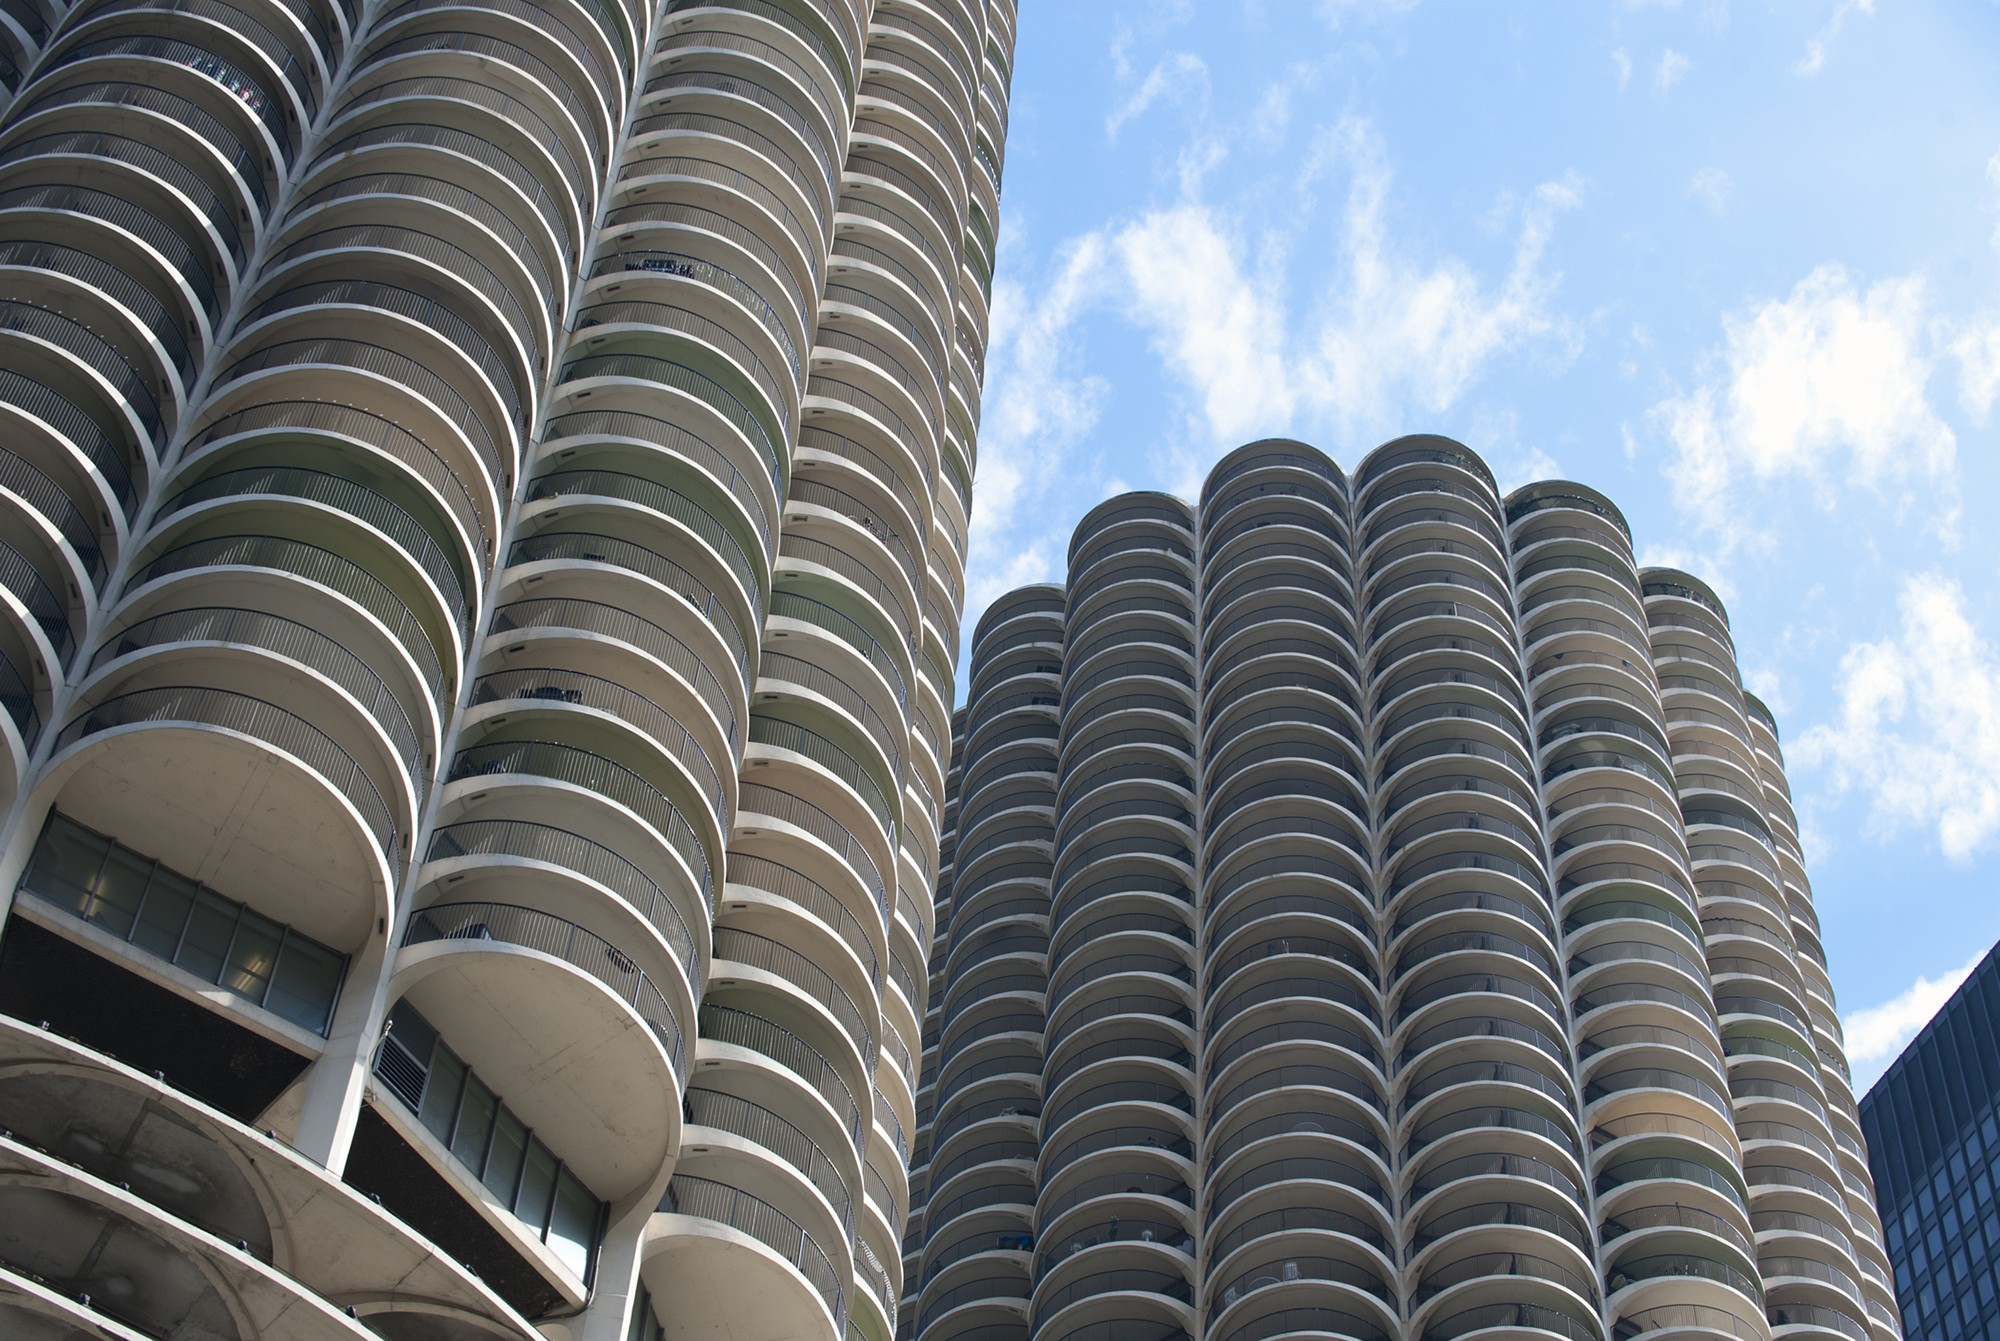 Chicago Mies Van Der Rohe Tour bertrand goldberg · architecture & design visual dictionary